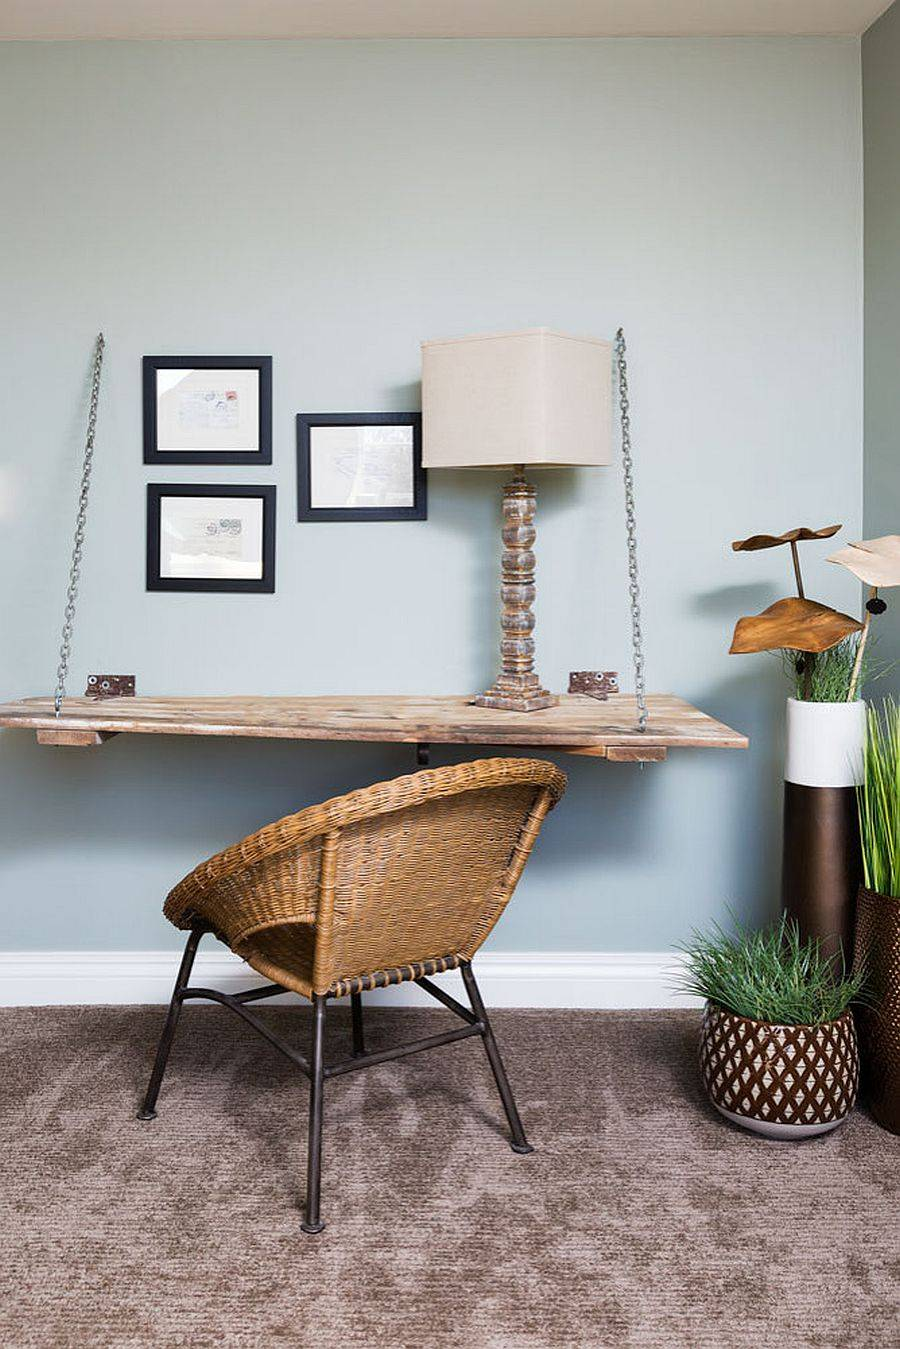 Turn the corner in the living room or bedroom into an elegant and understated rustic home workspace